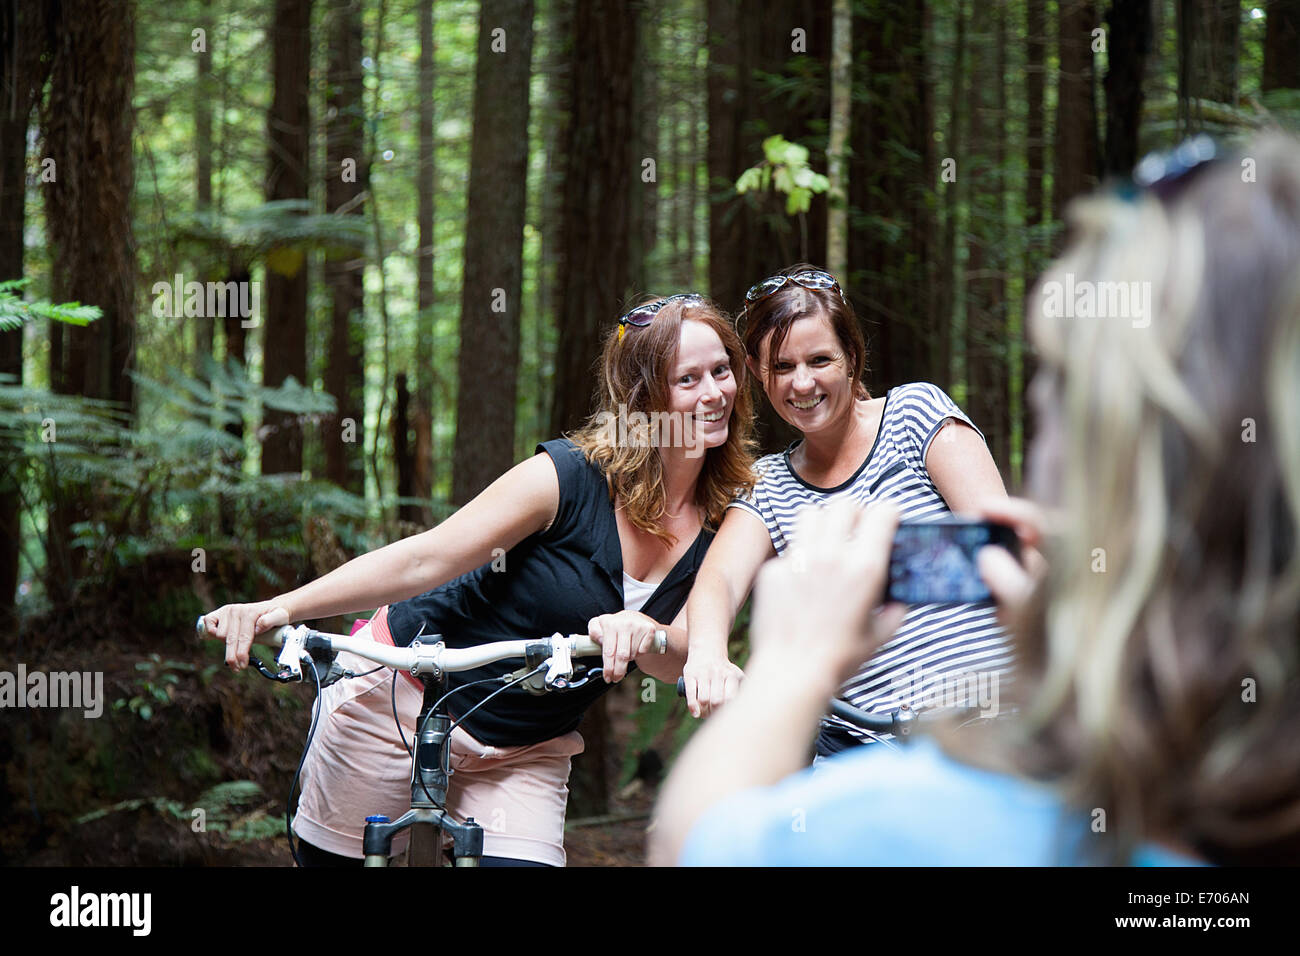 Over shoulder view of women mountain bikers posing for photograph on smartphone in forest - Stock Image